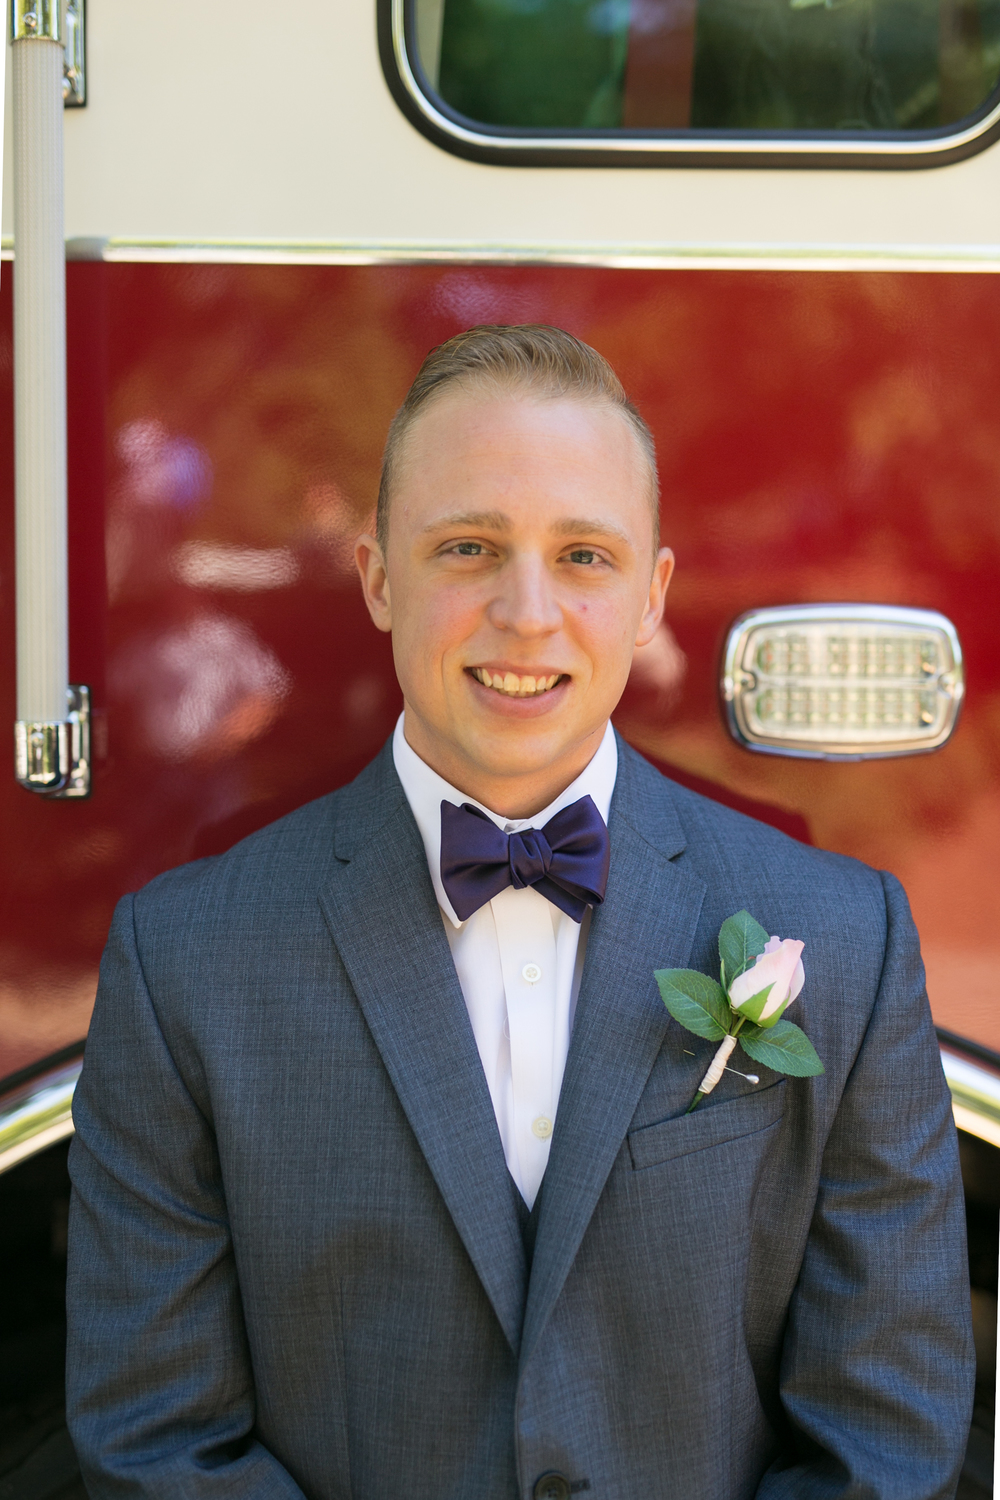 Fireman Wedding Groom With Bright Red Firetruck